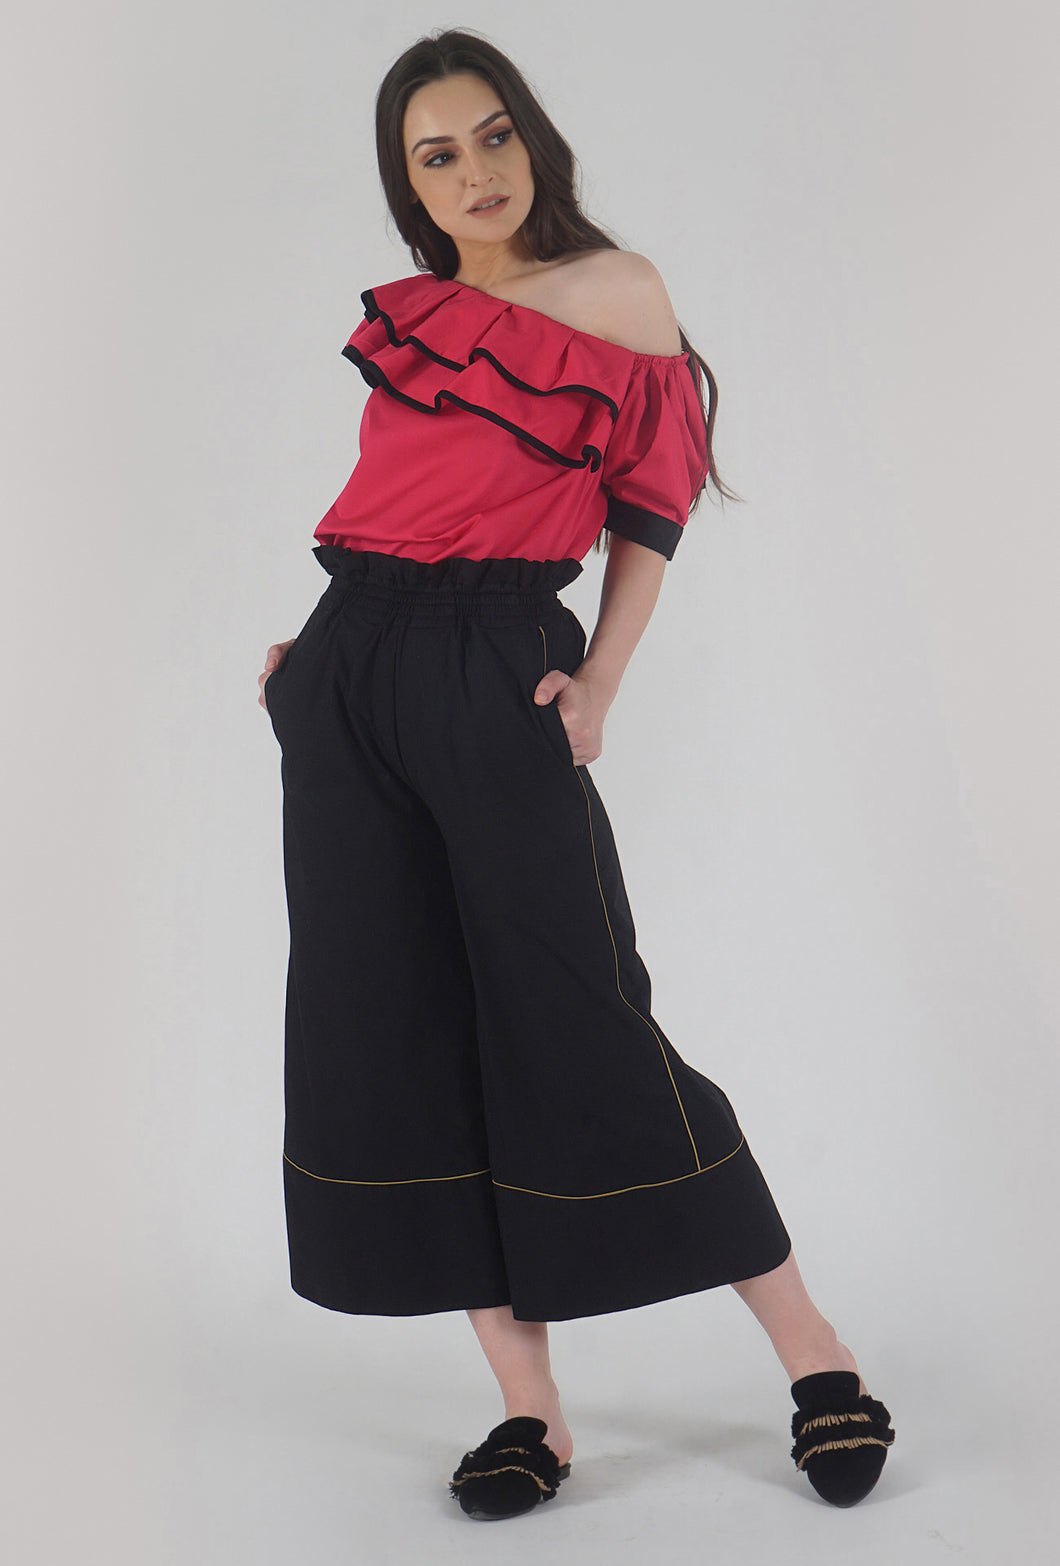 Black Piping Detailed Wide Legged Castellations Culotte Pants style